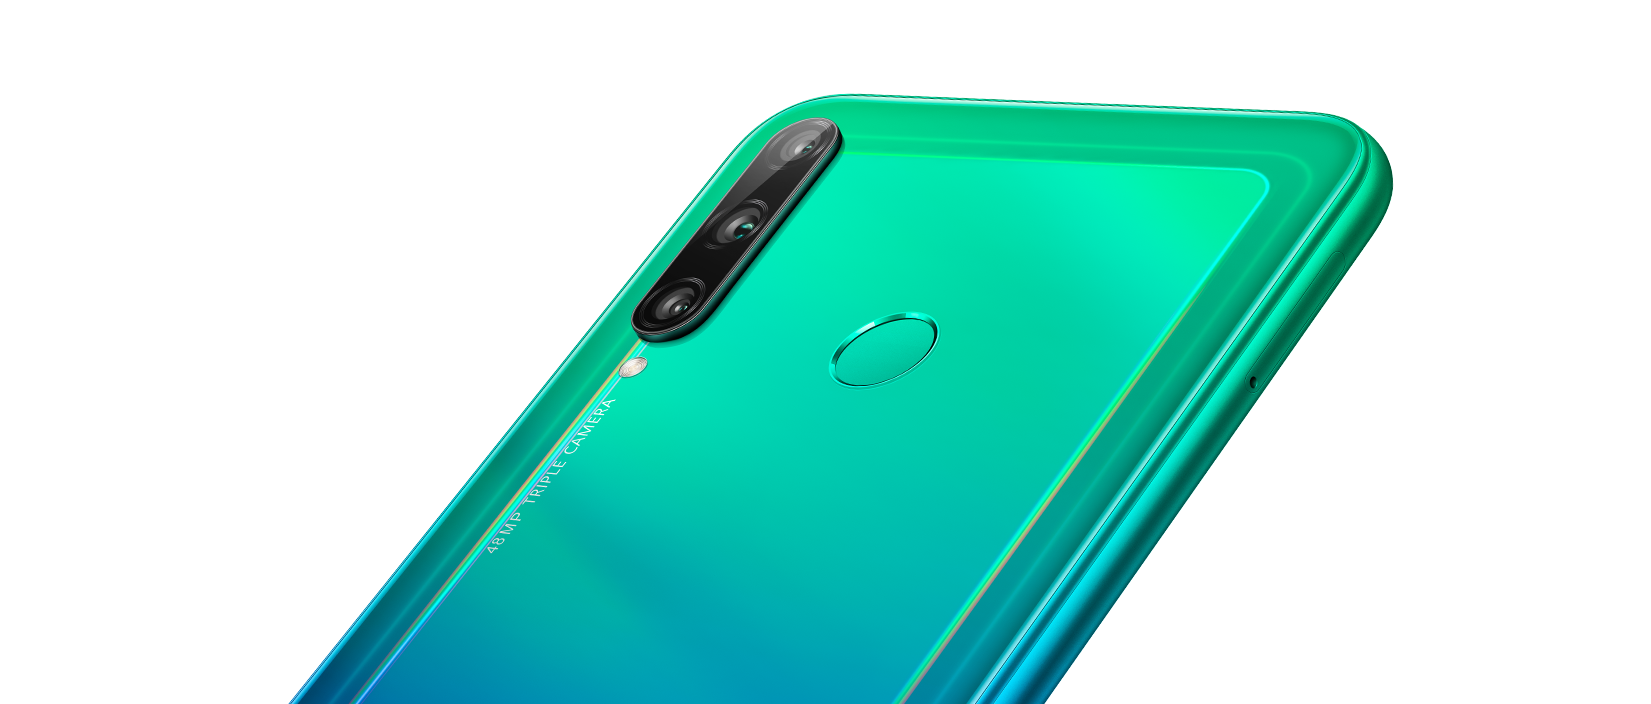 HUAWEI y7p-fingerprint unlock phone